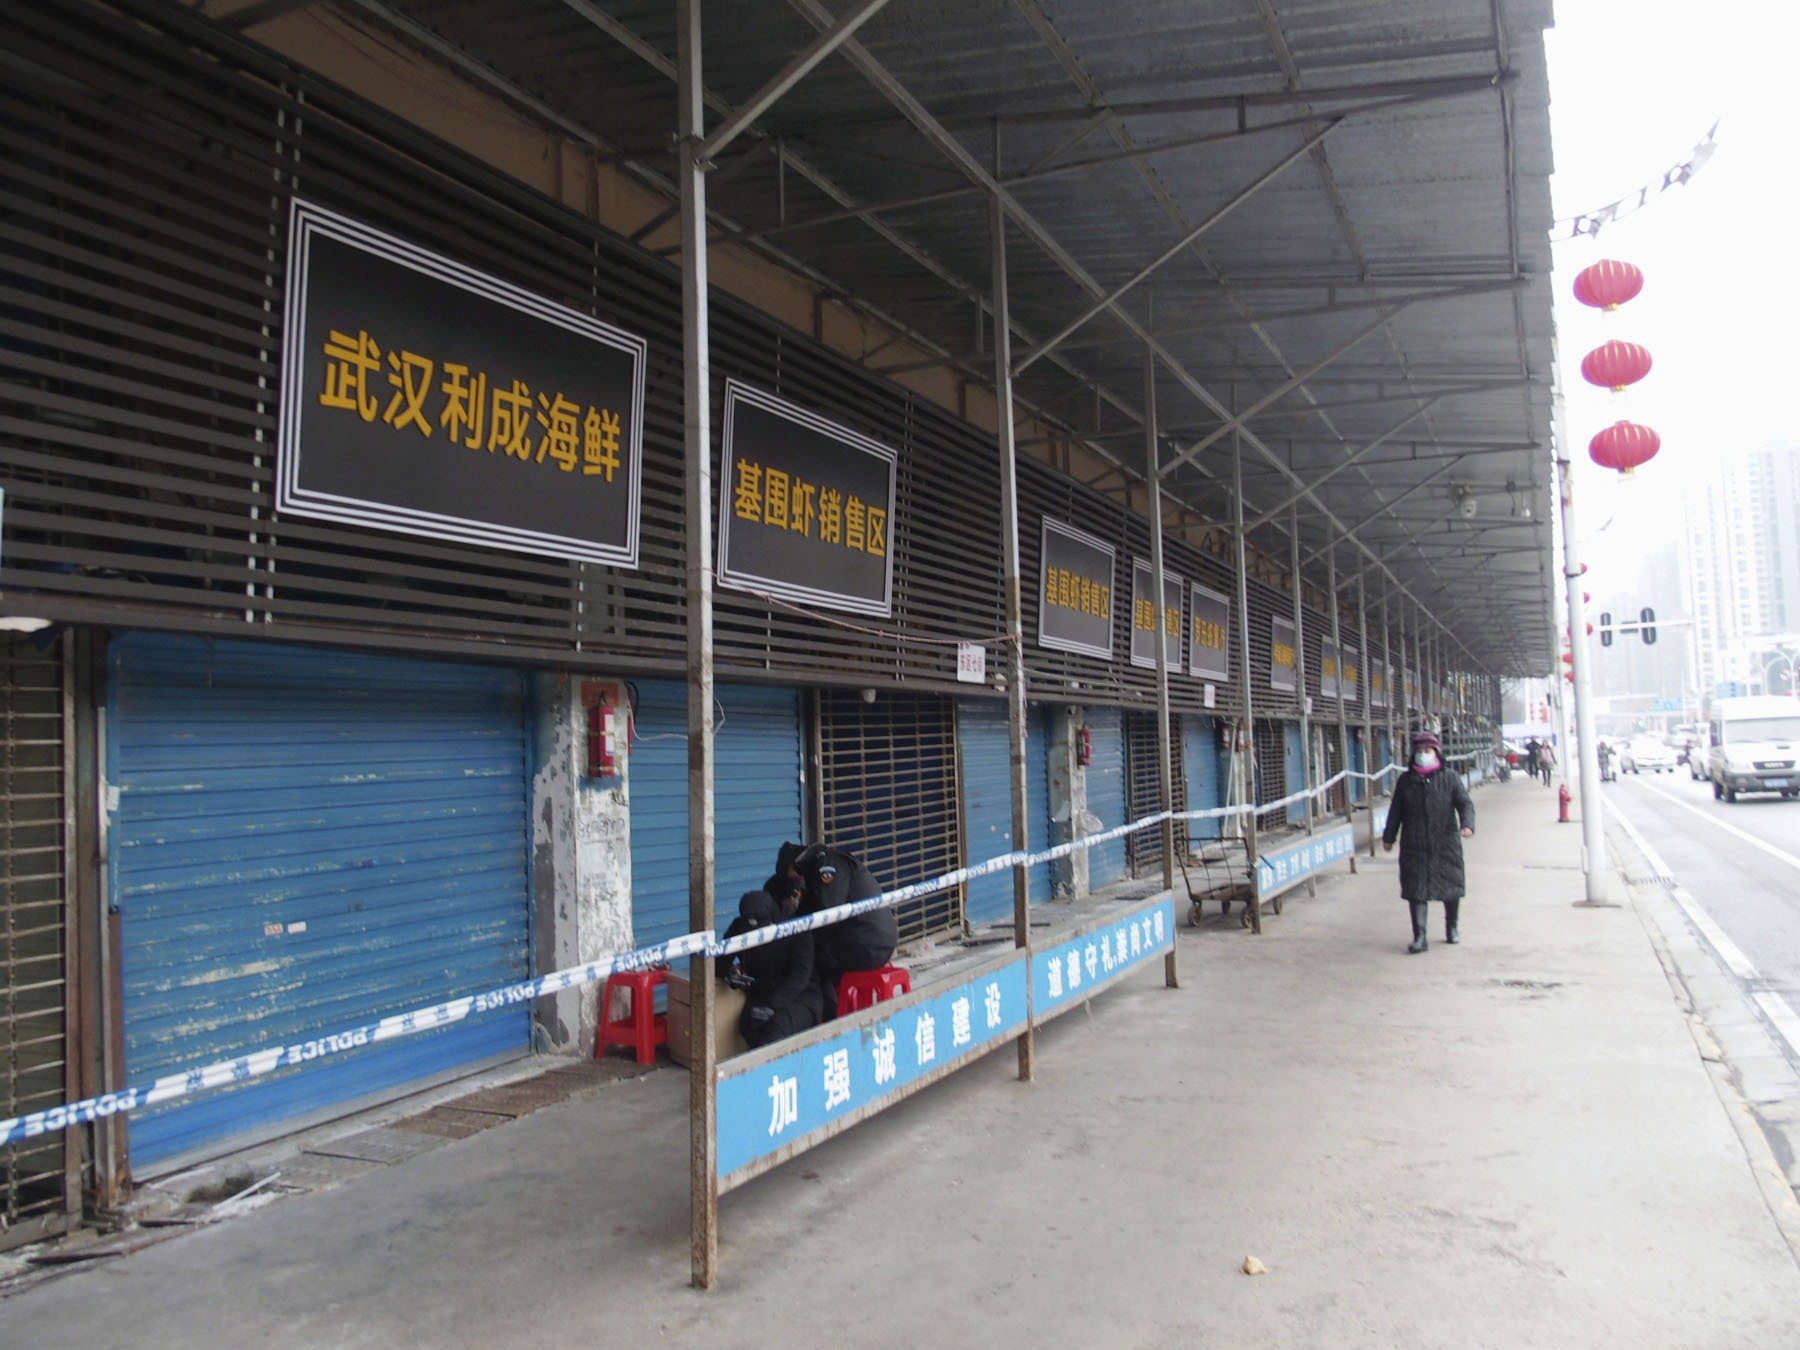 A street in the Chinese city of Wuhan is almost deserted as the shutdown of the seafood market, which has been linked to cases of a new coronavirus, continues on Jan. 17, 2020.